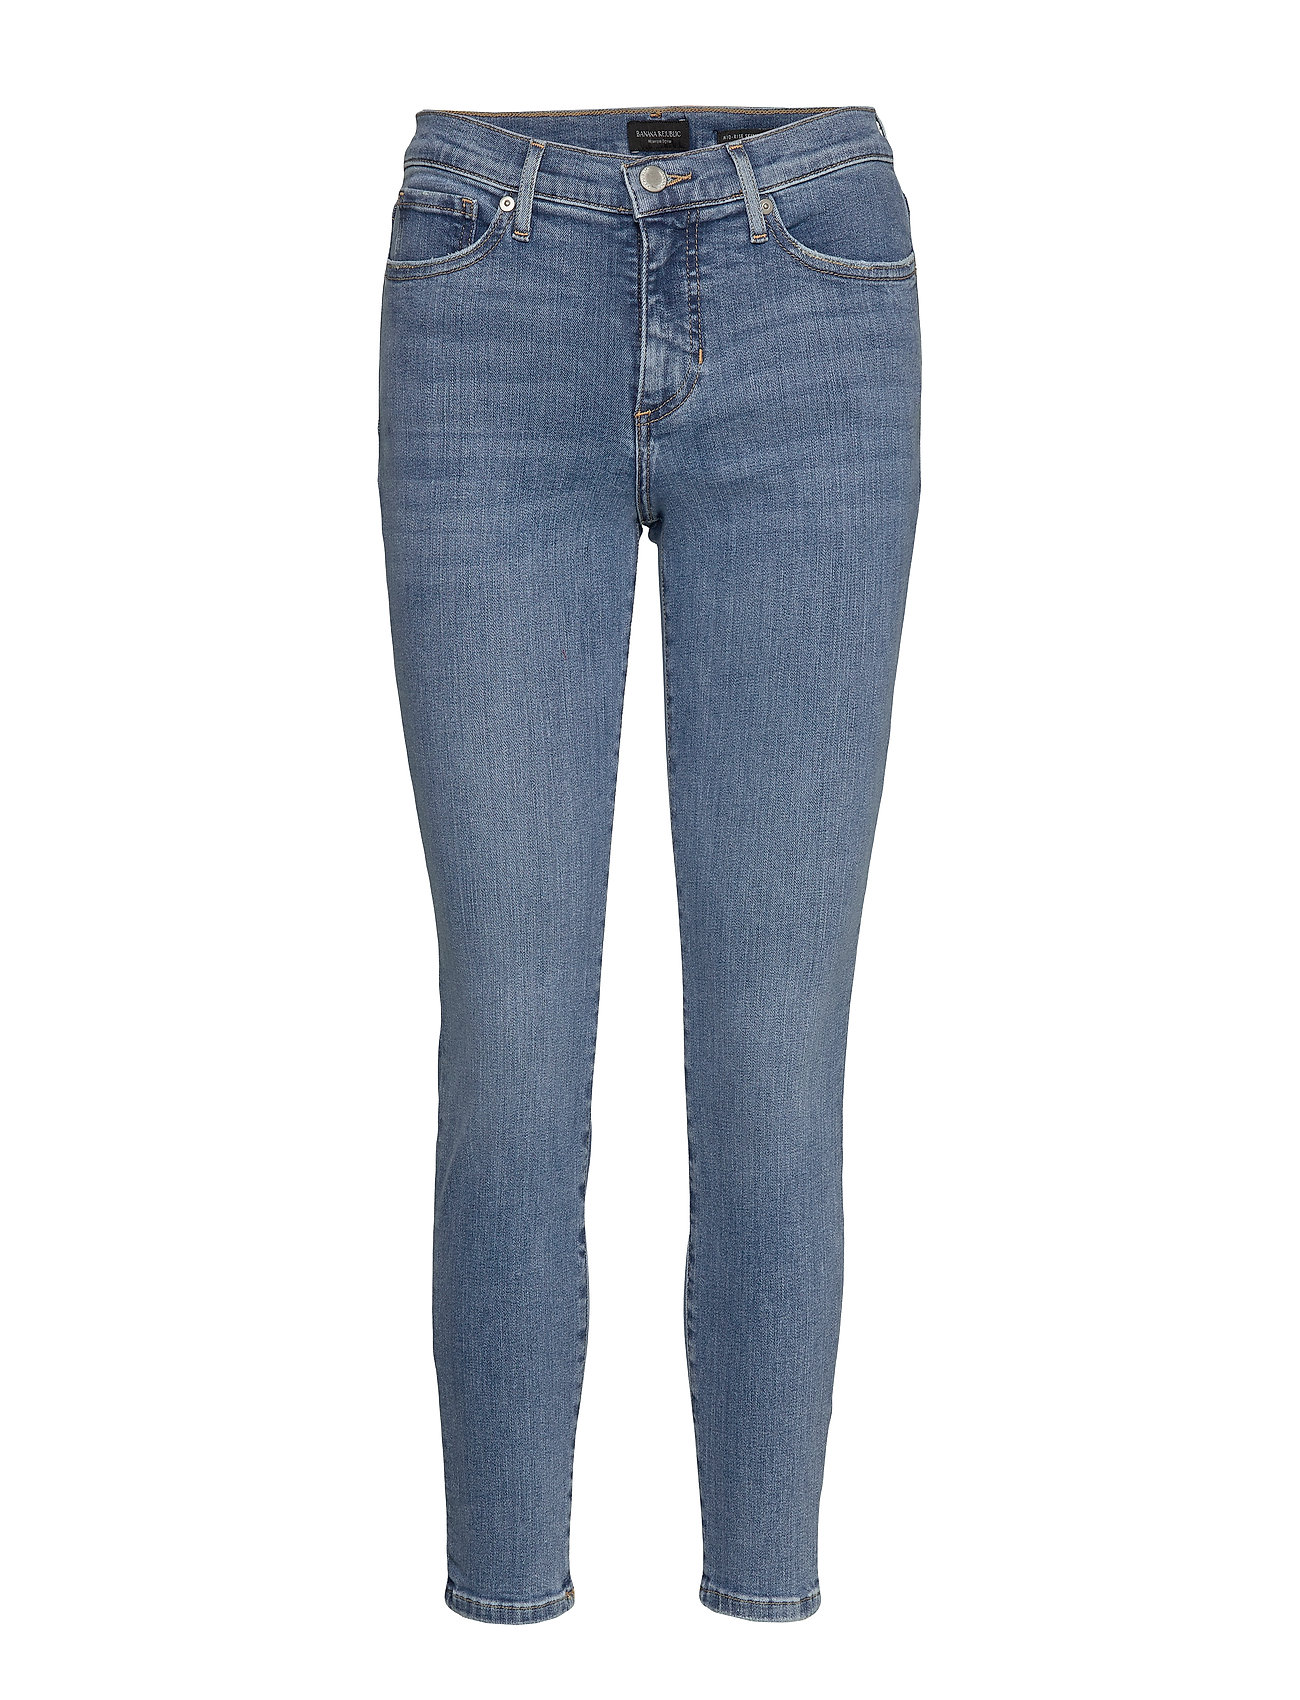 Banana Republic Mid-Rise Skinny Ankle Jean - LIGHT WASH